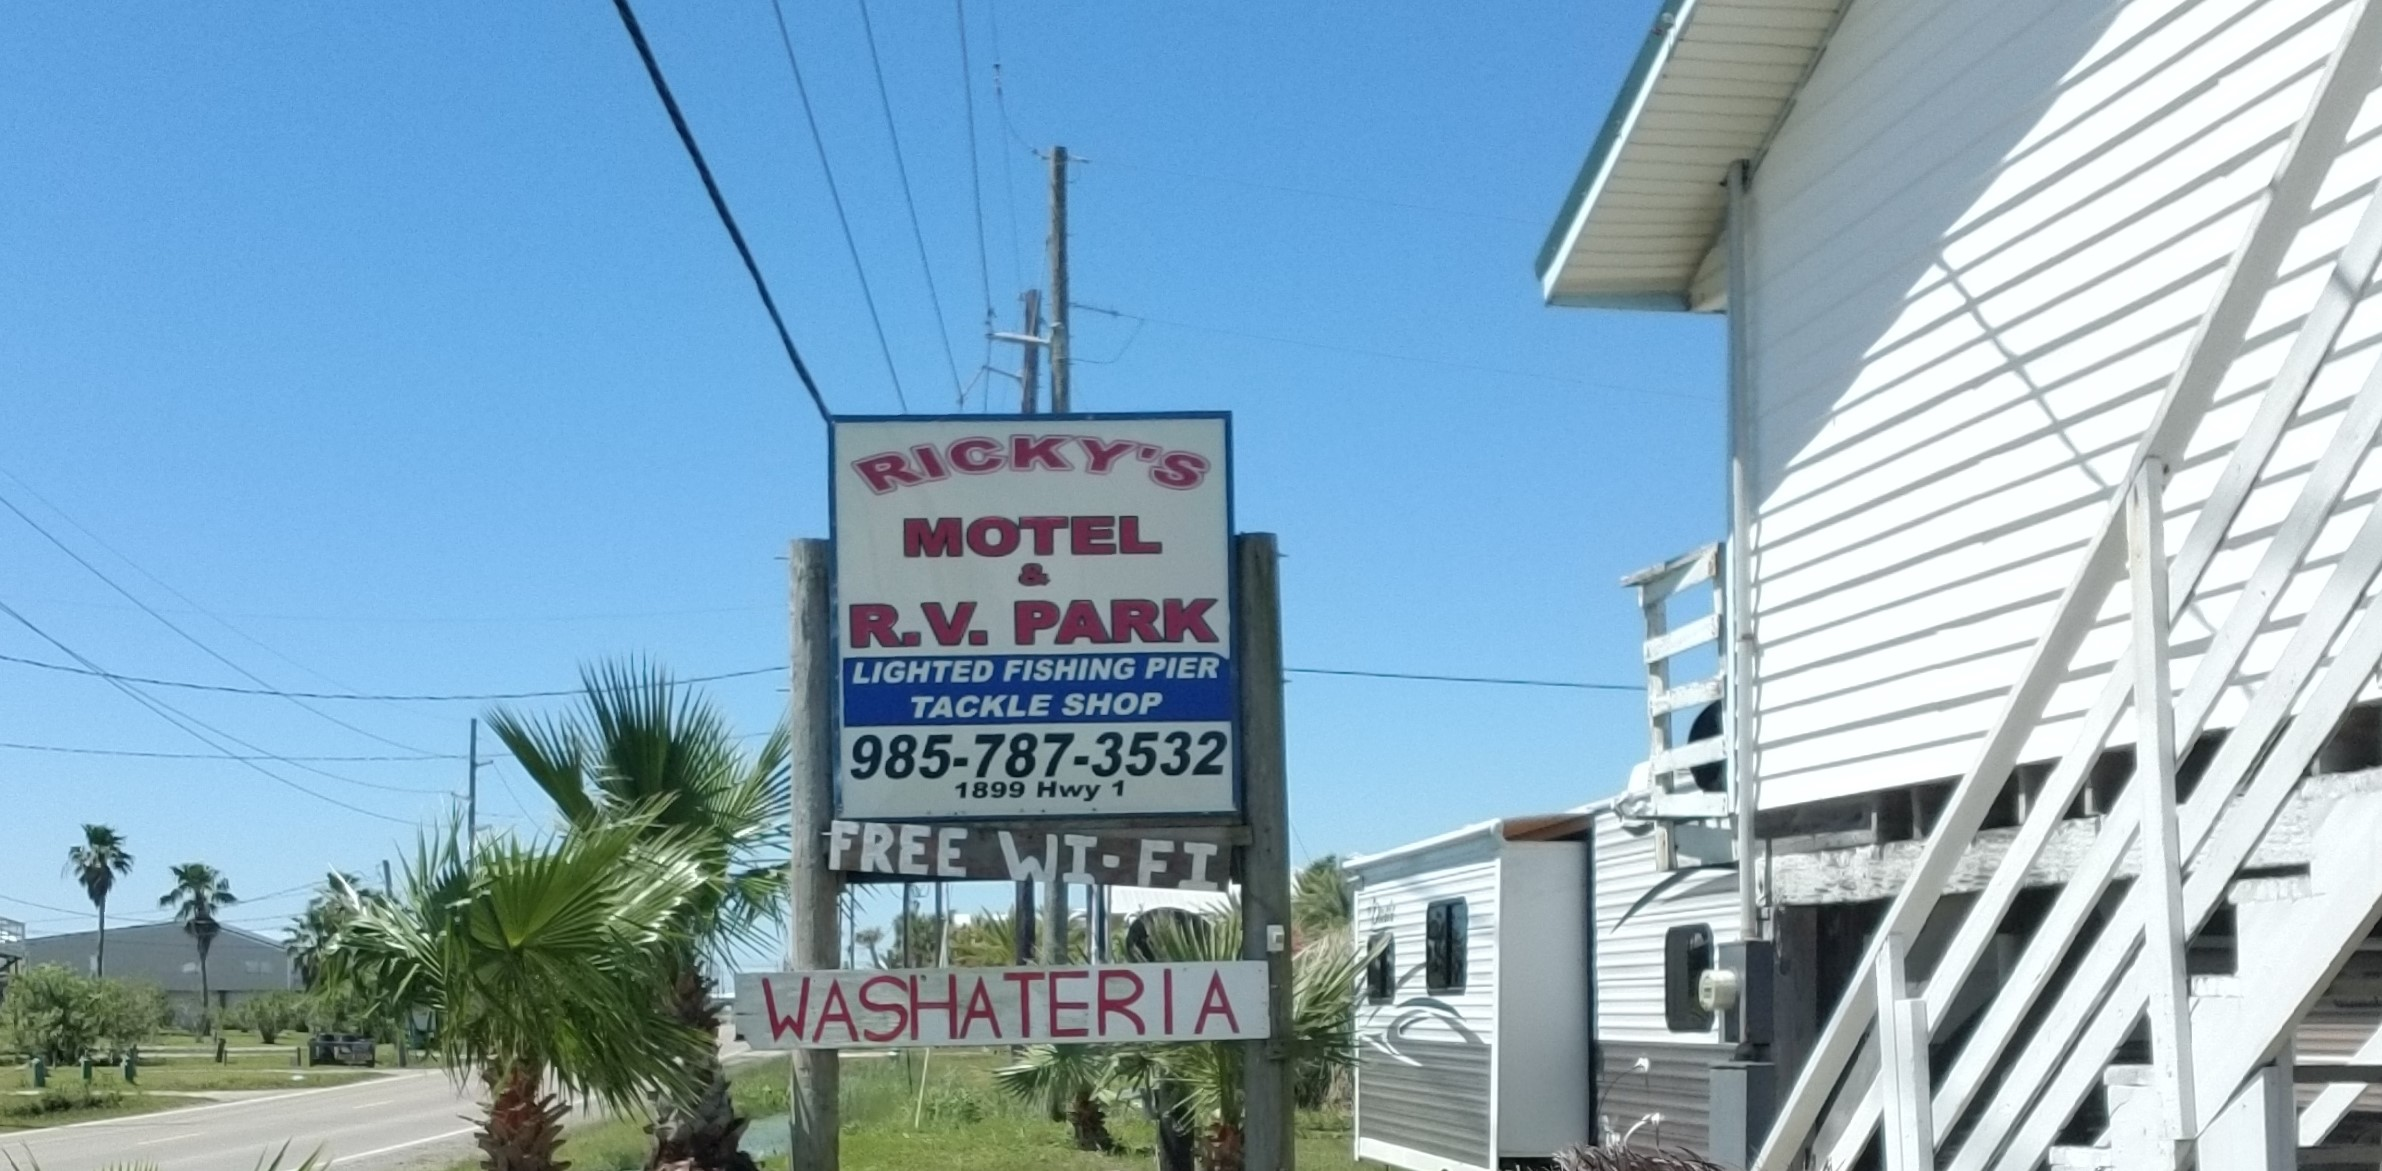 Ricky's Motel and RV Sites